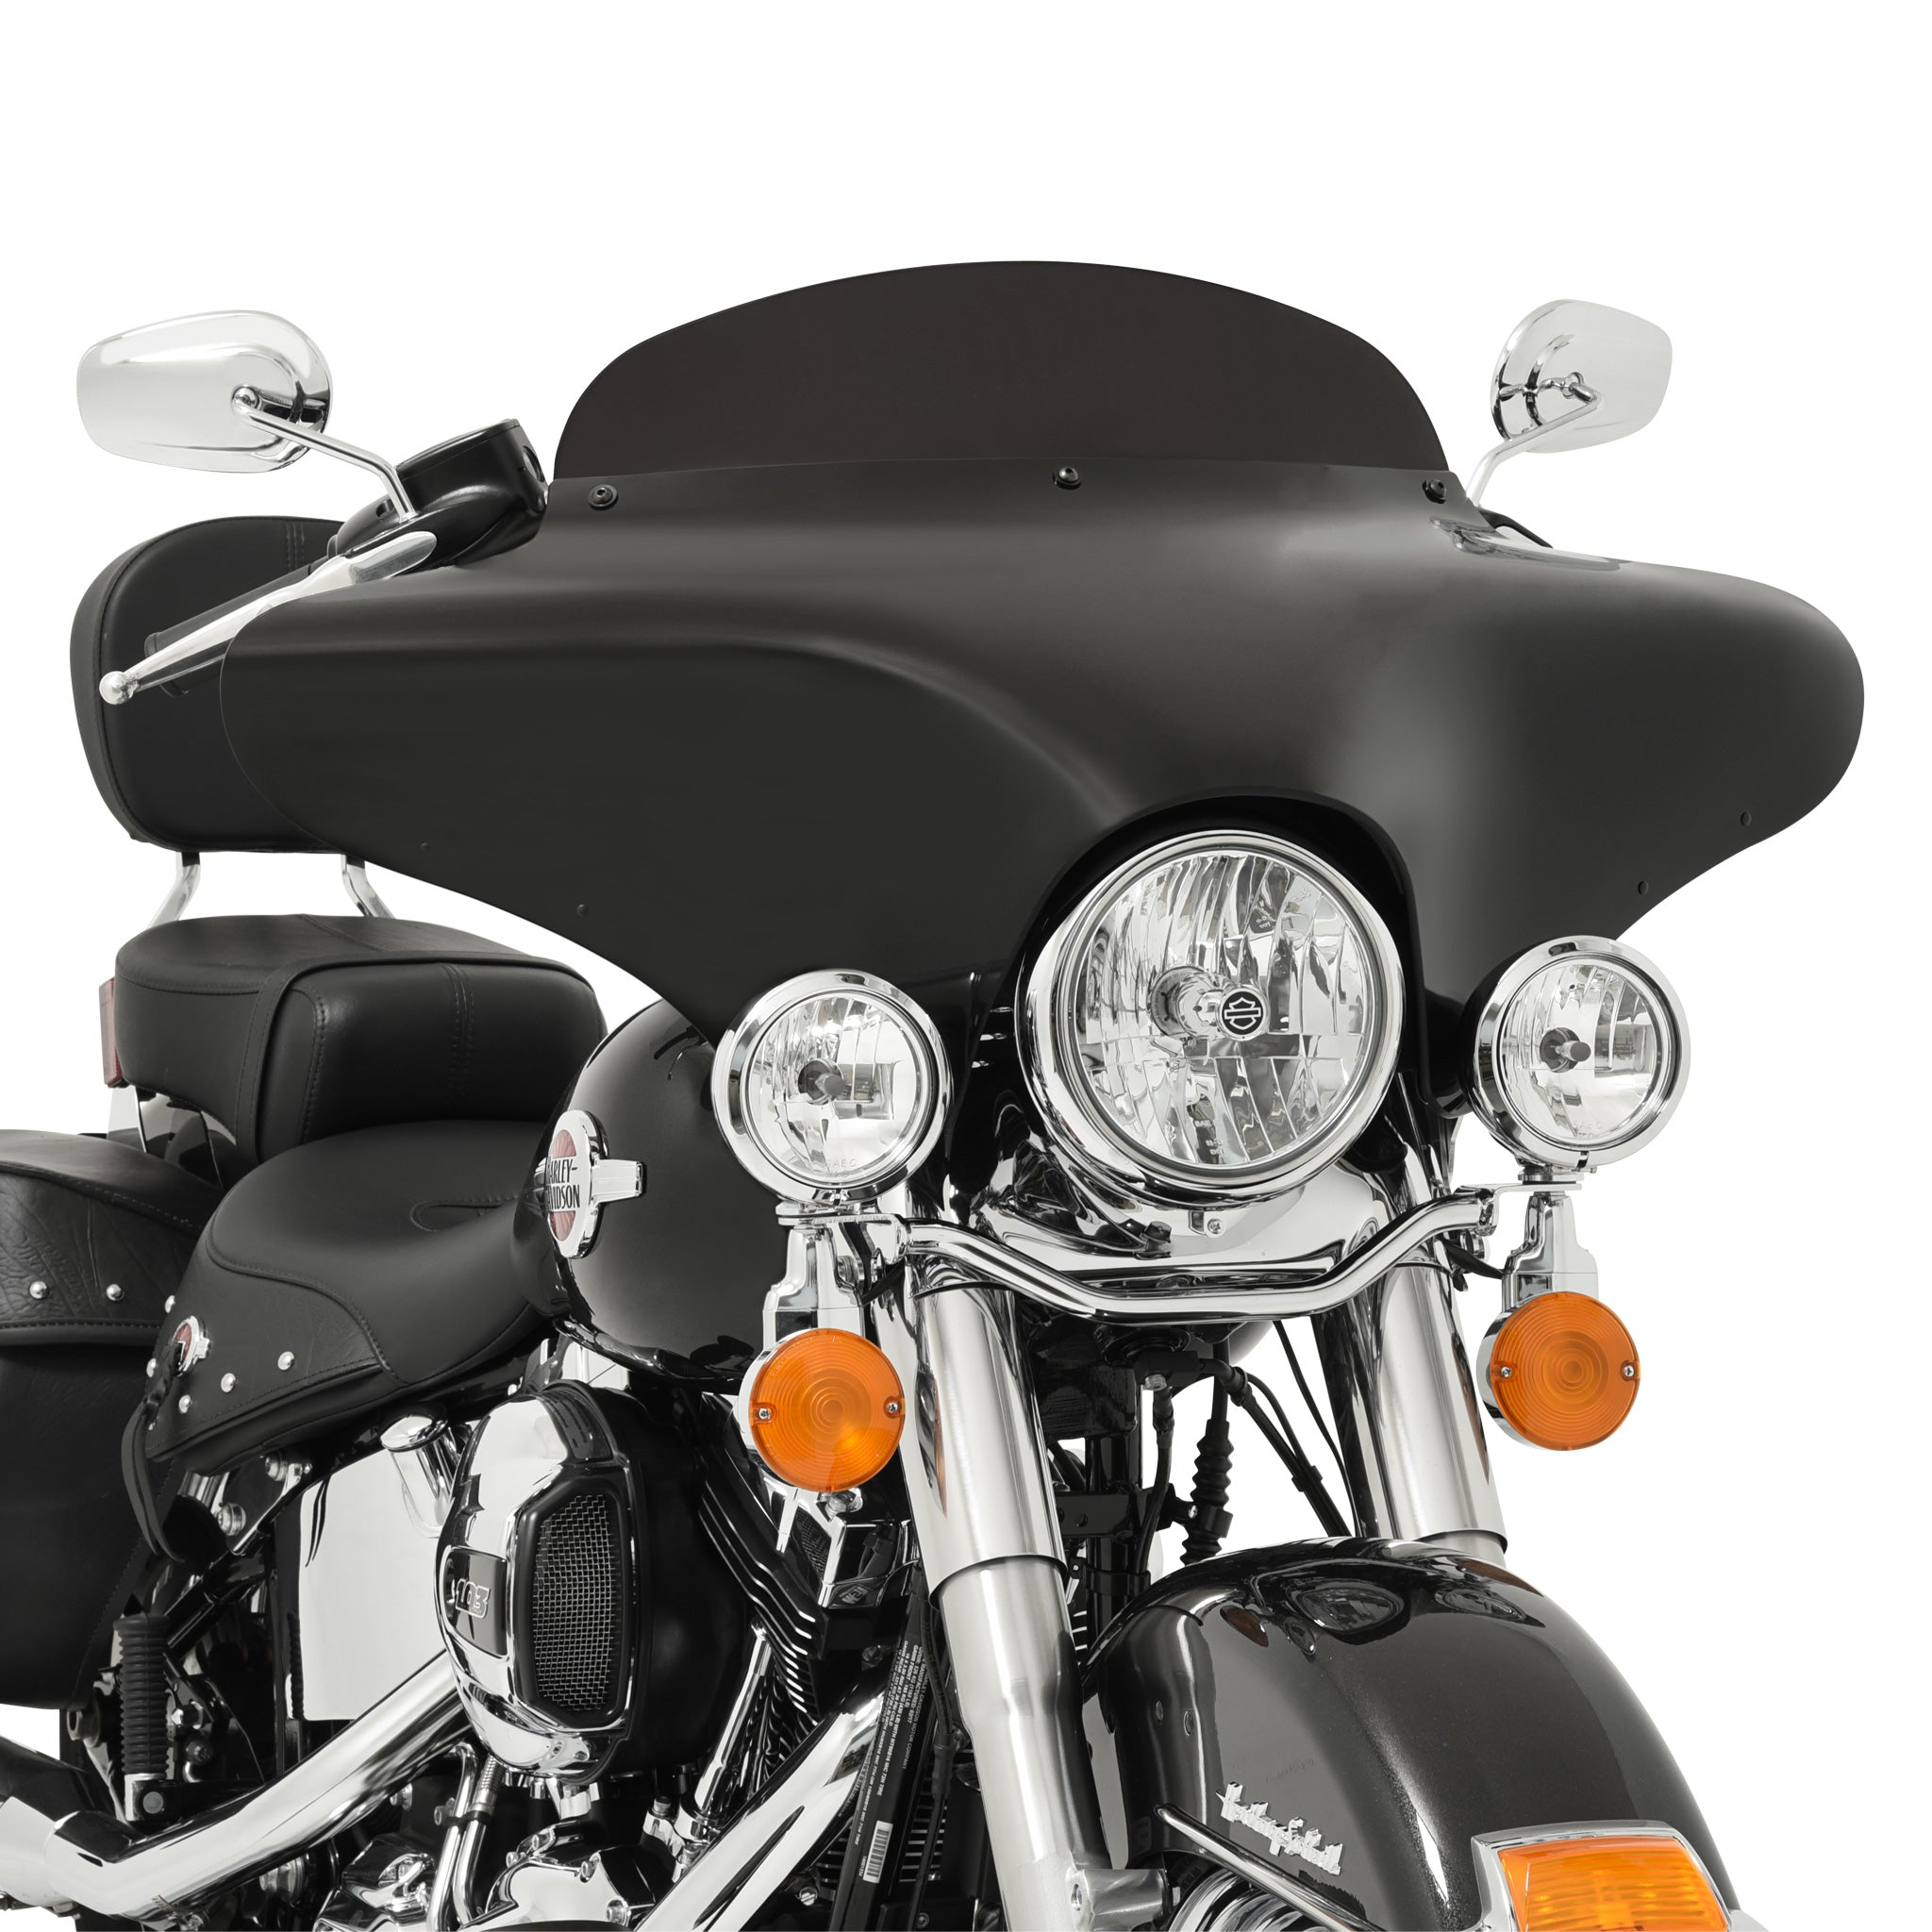 Batwing Fairing For Flstc Heritage Softail Classic Heritage Batwing